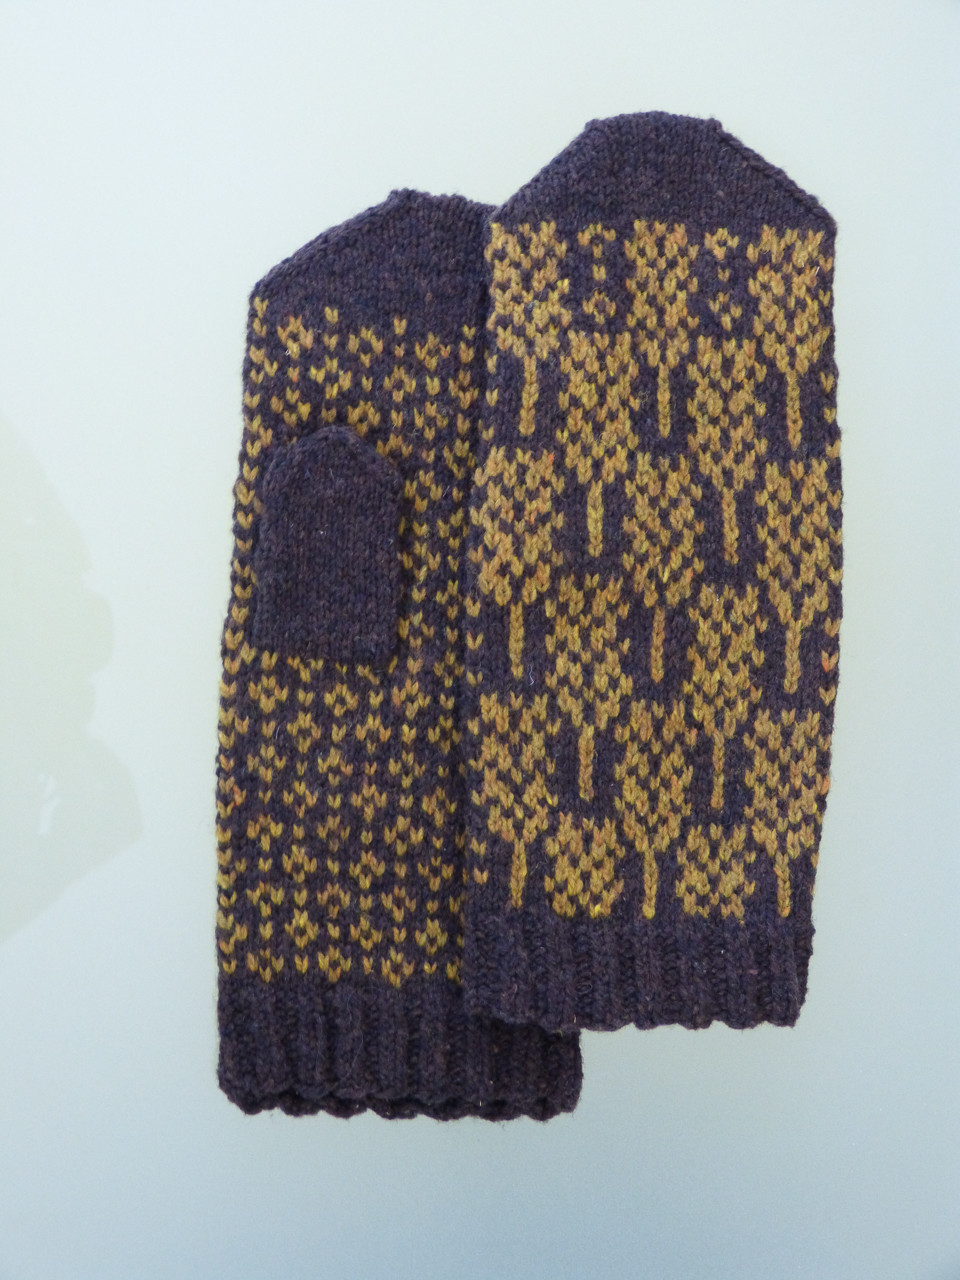 Wheatfield mittens from the book